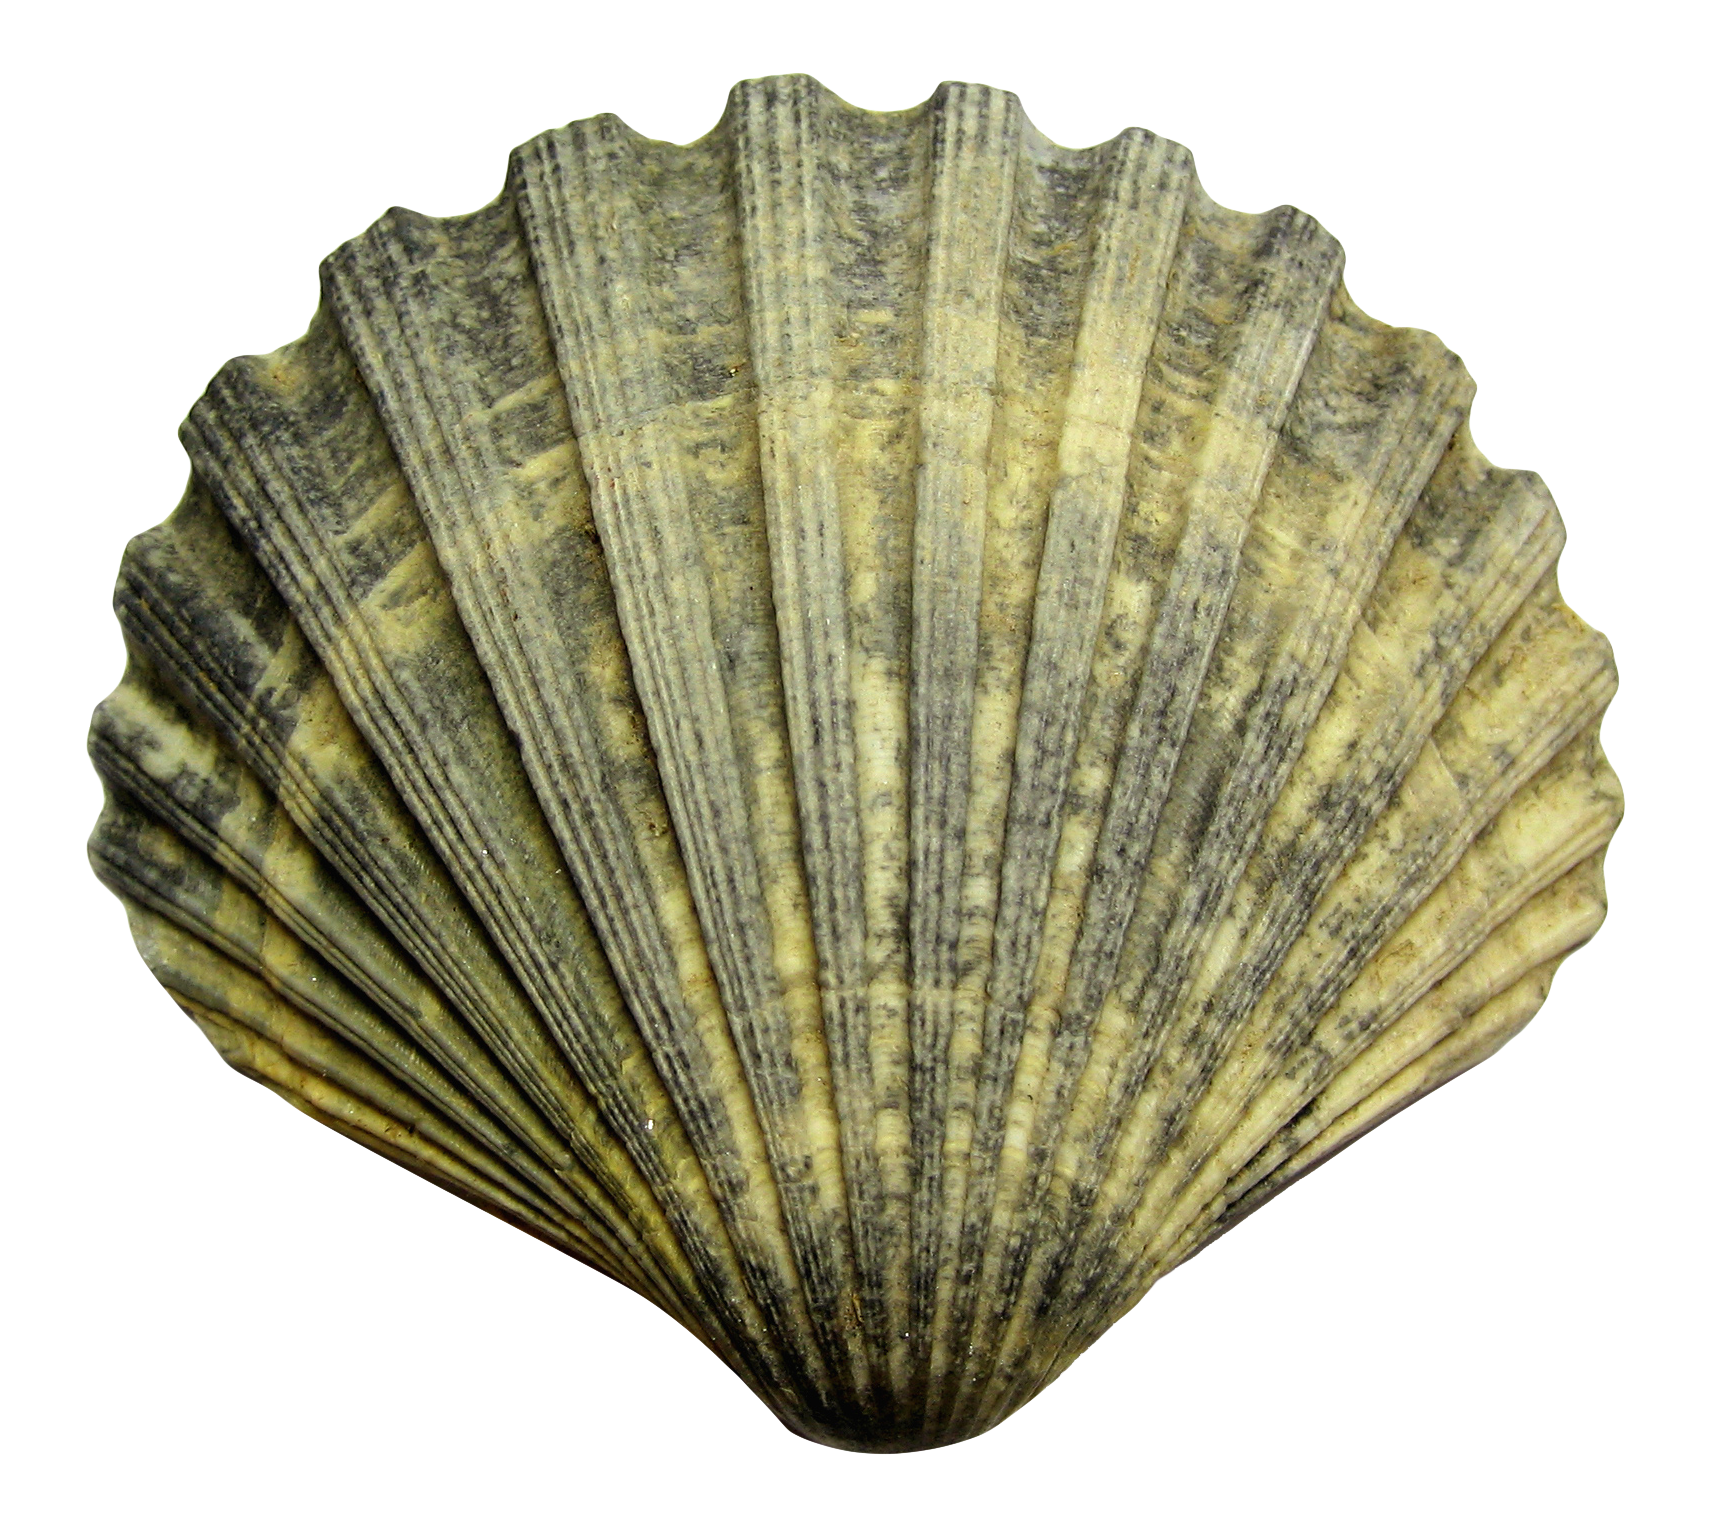 Sea Shell PNG Image